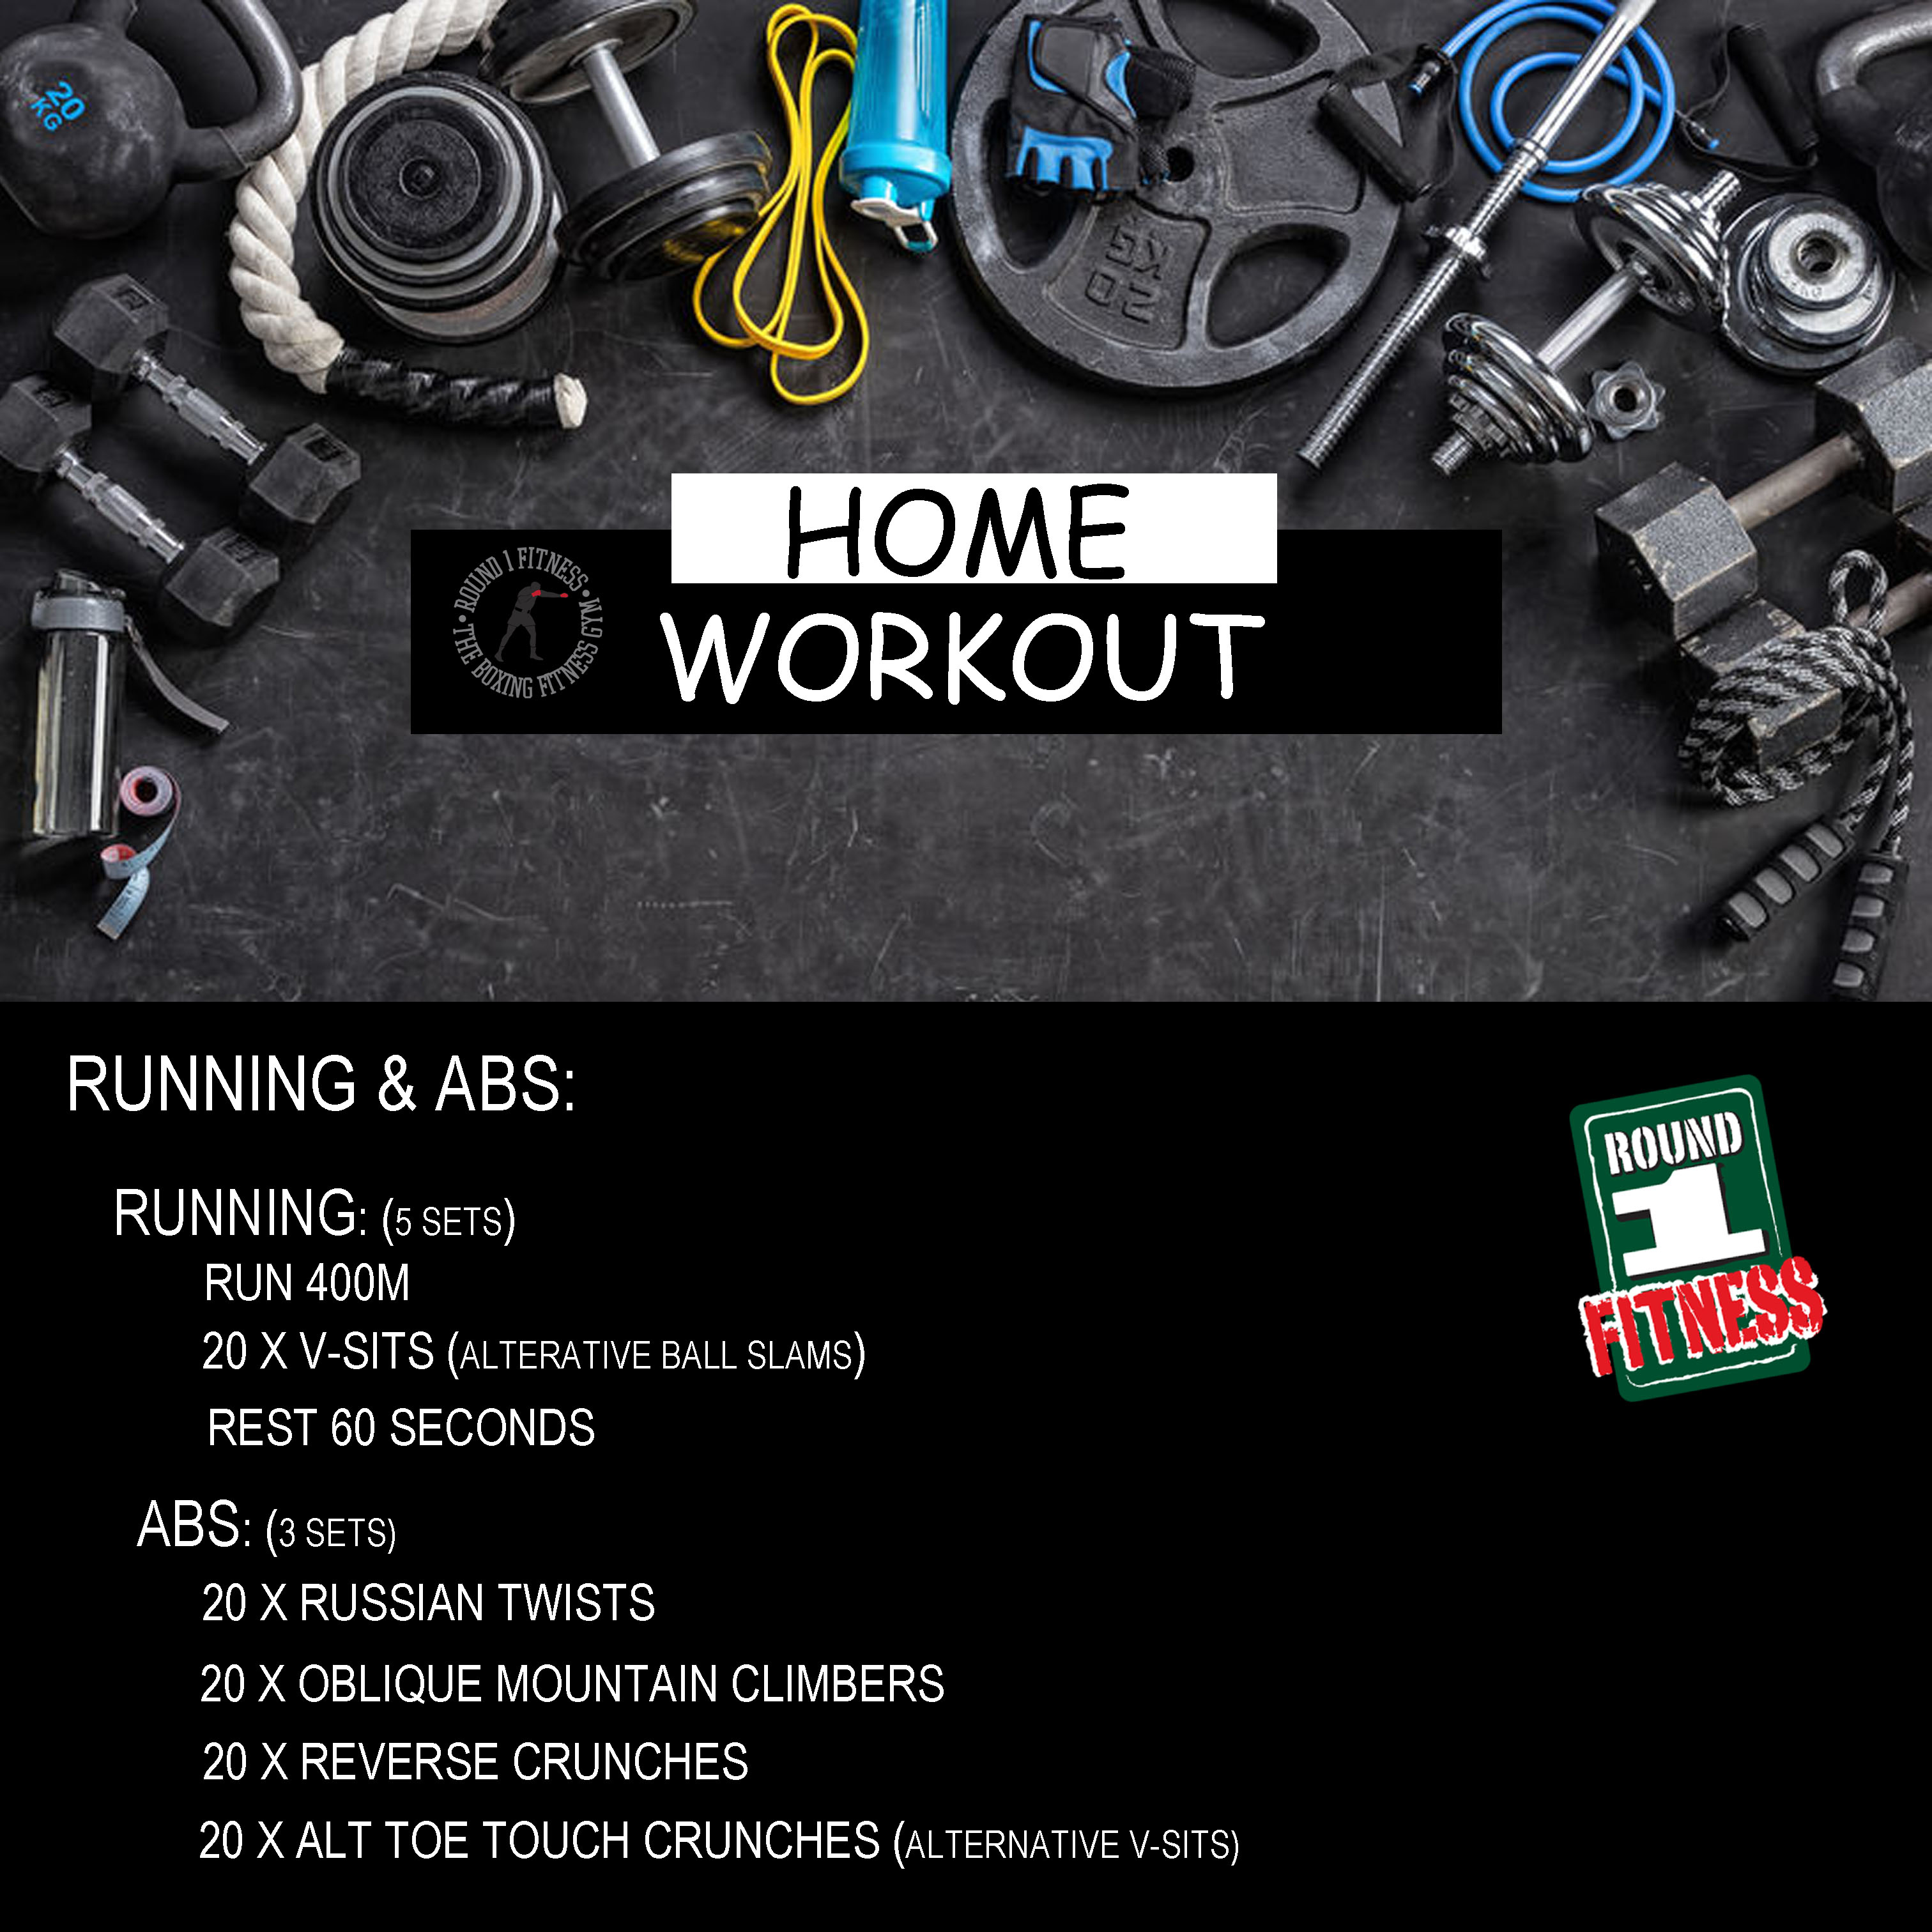 COVID Lockdown#3 – Round 1 @ Home – Workout 6, April 29th 2021